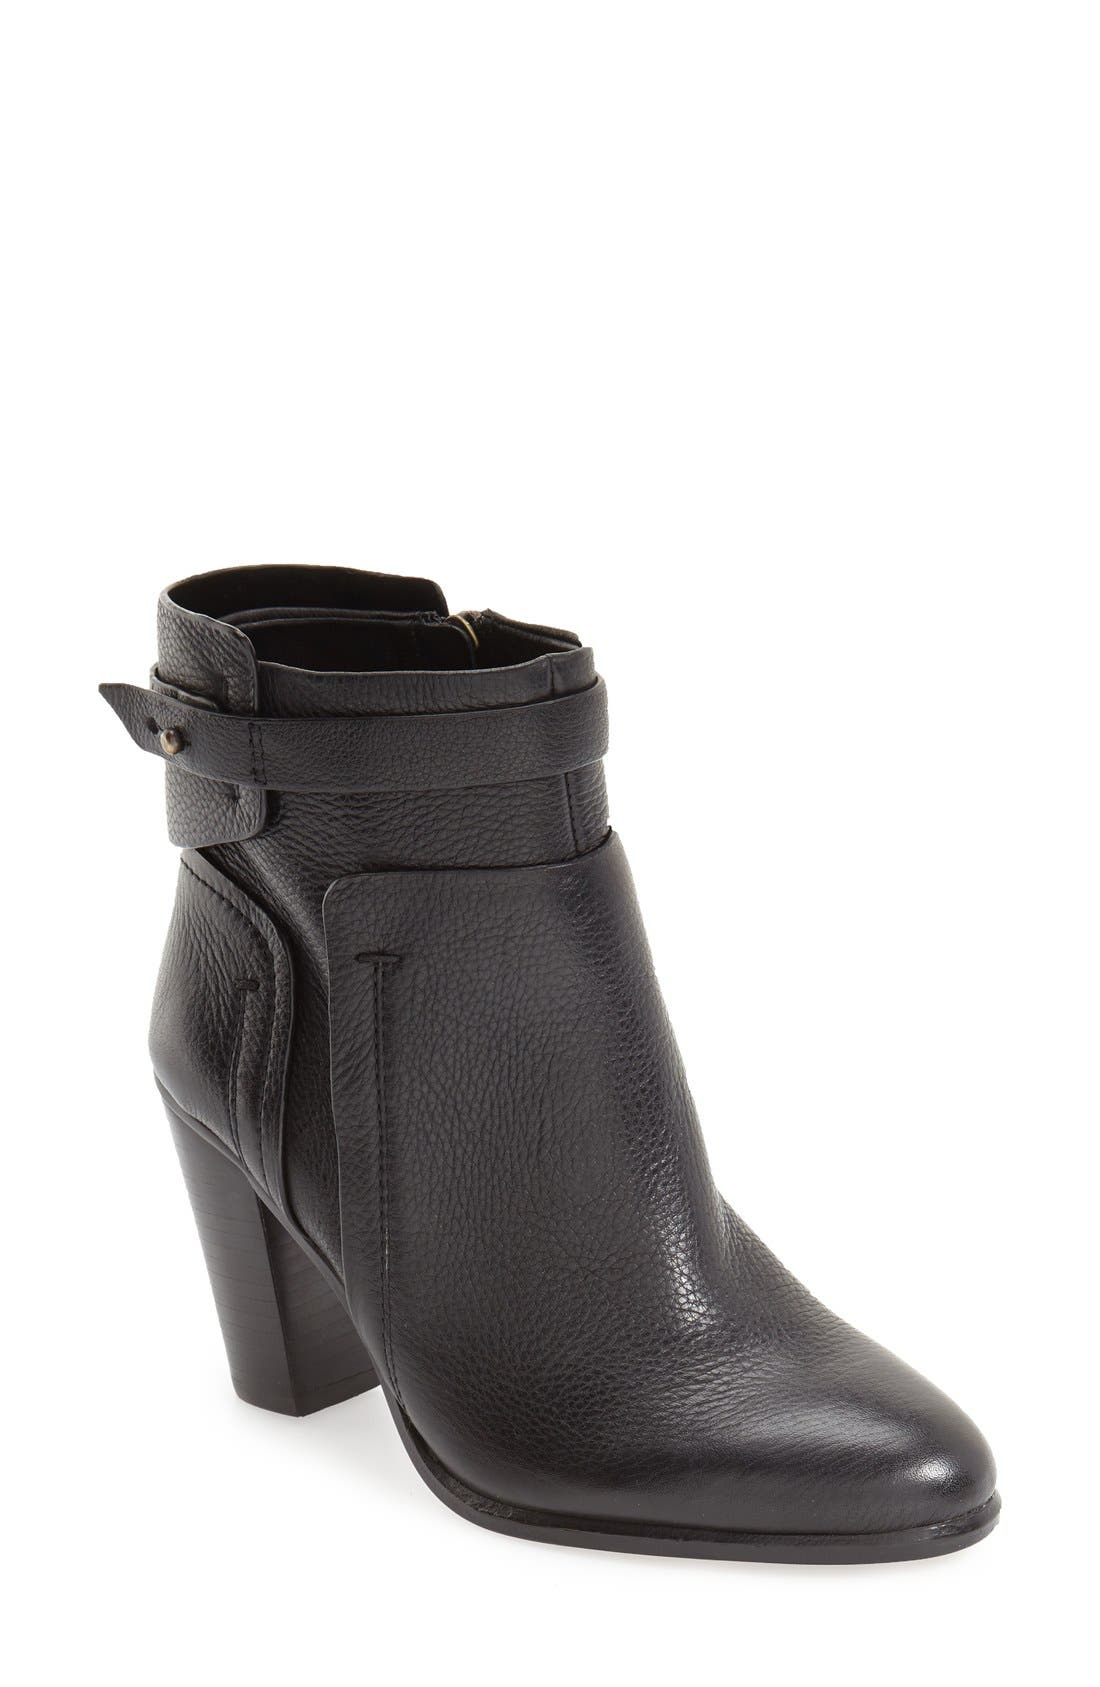 Alternate Image 1 Selected - Vince Camuto 'Faythe' Bootie (Women)